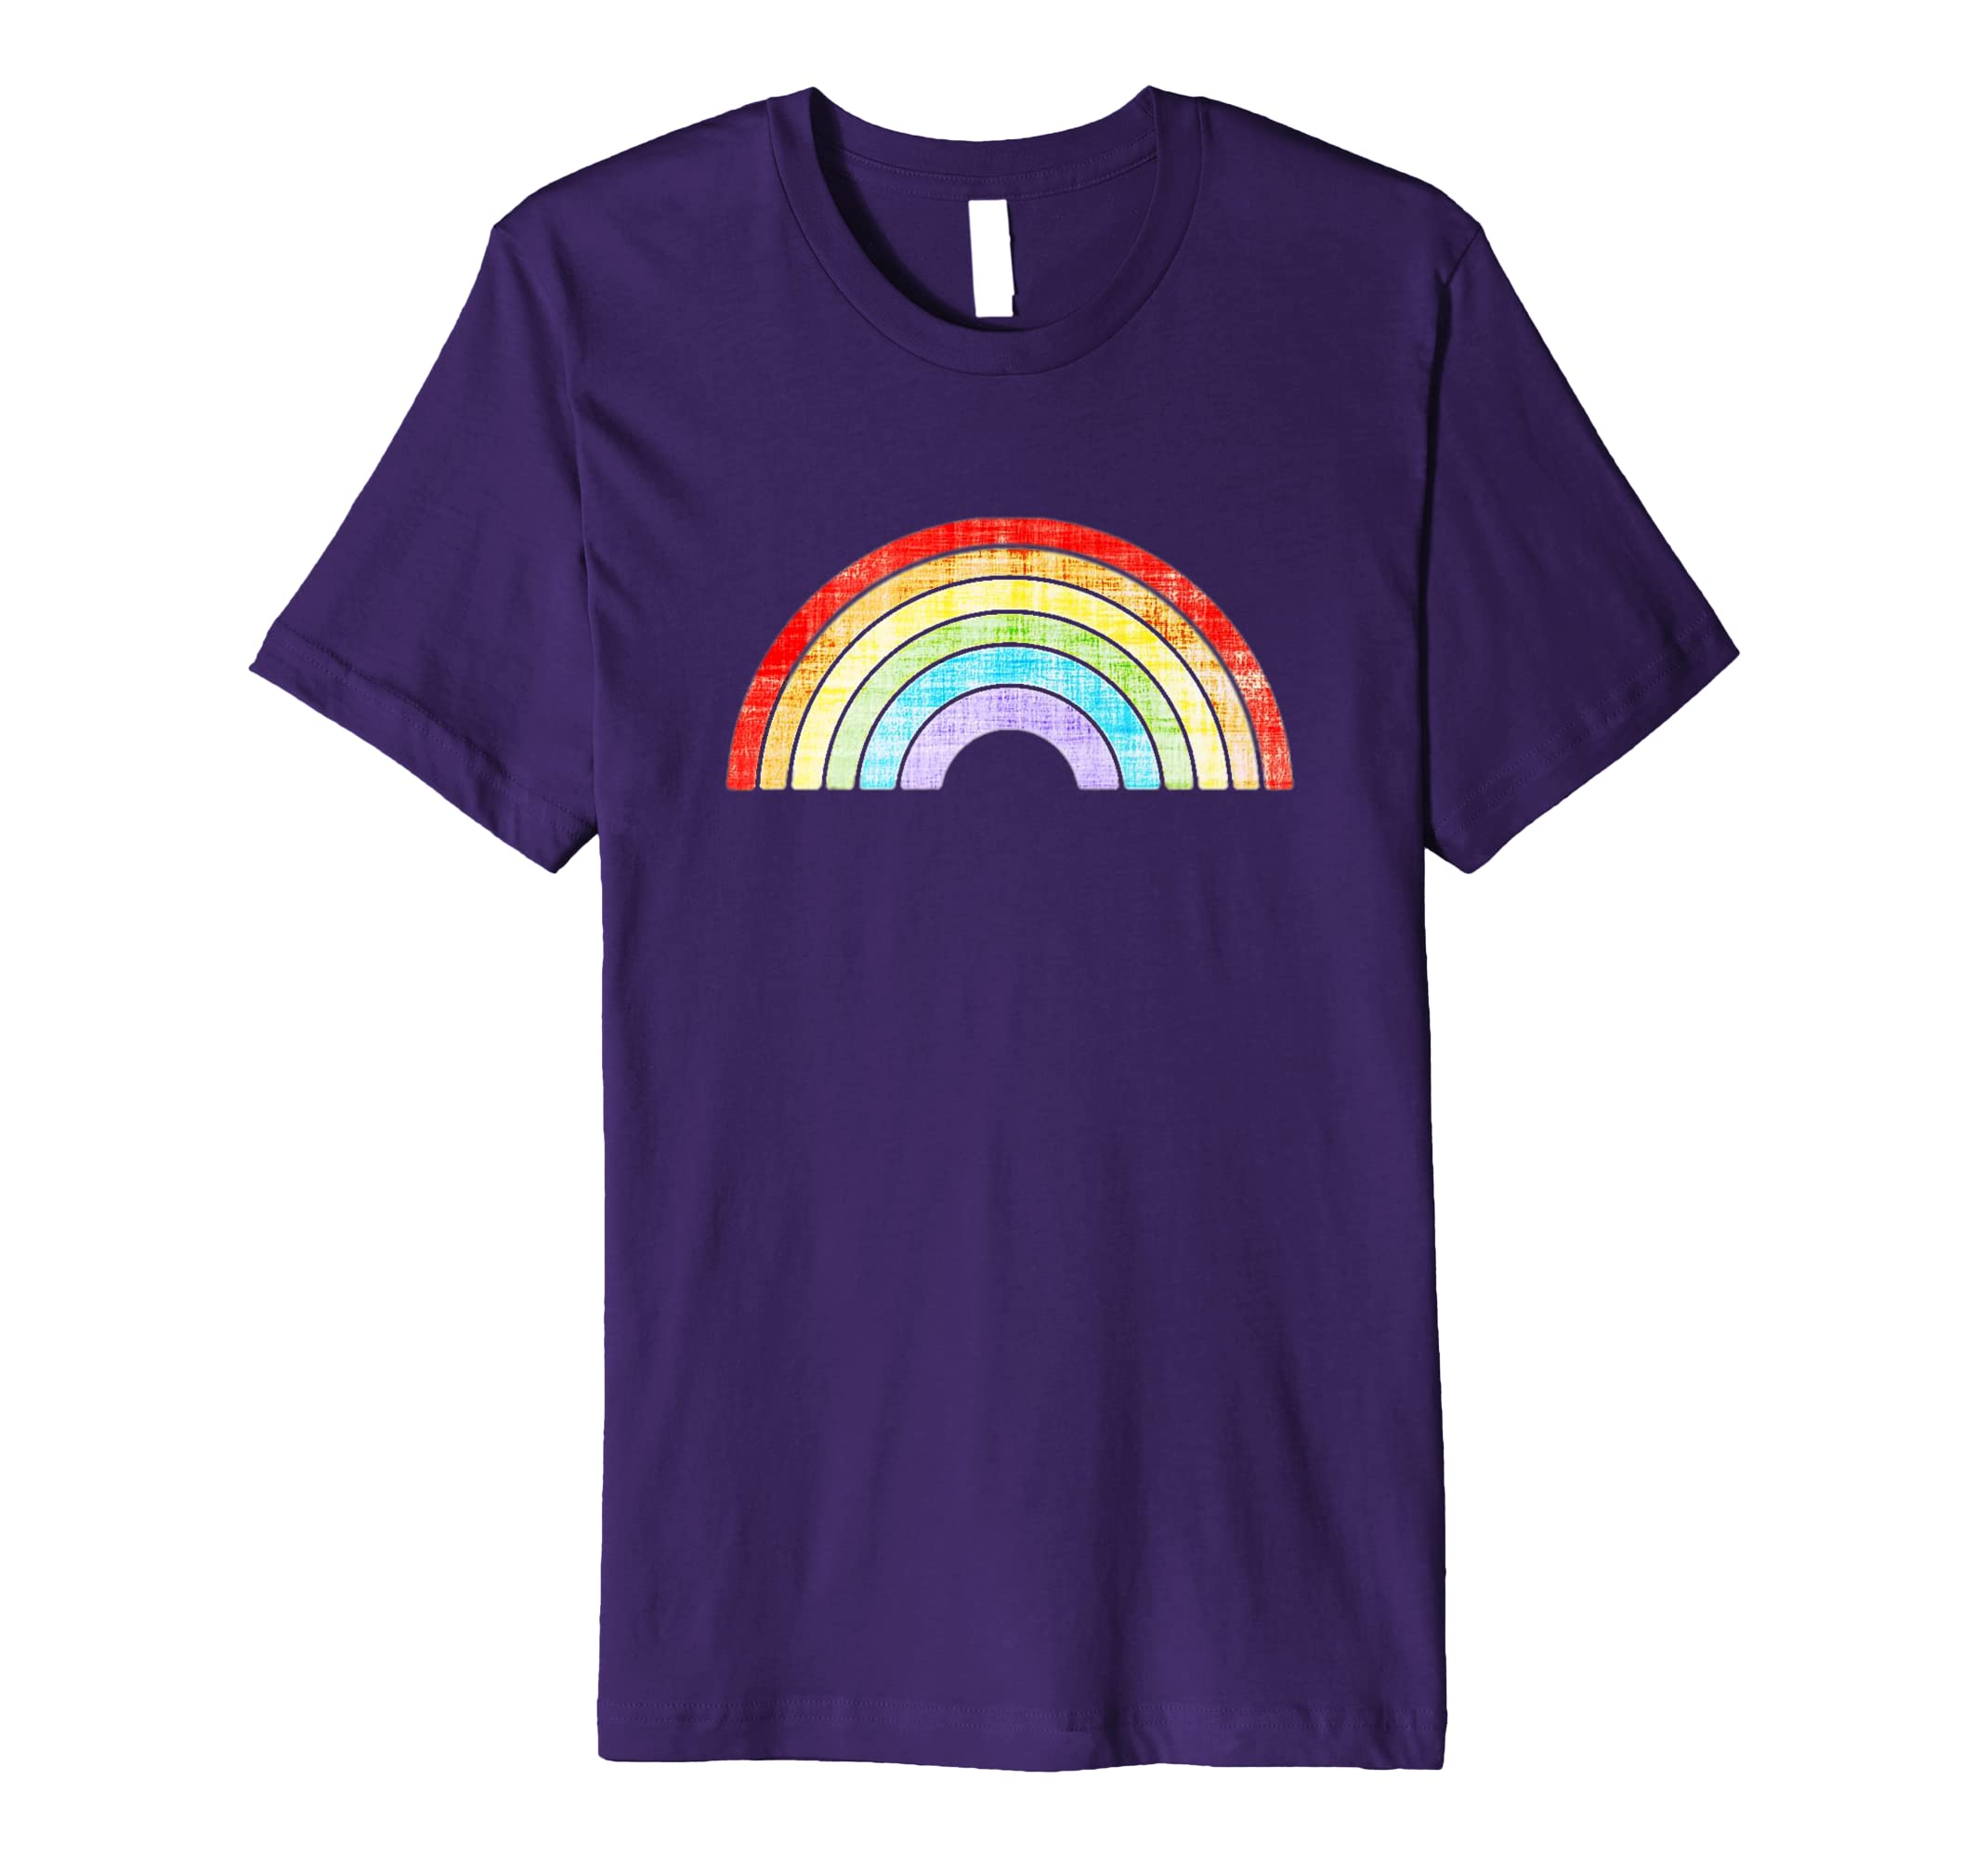 289df038 Amazon.com: Vintage Retro Rainbow Gay Pride T Shirt Men Women Gift: Clothing